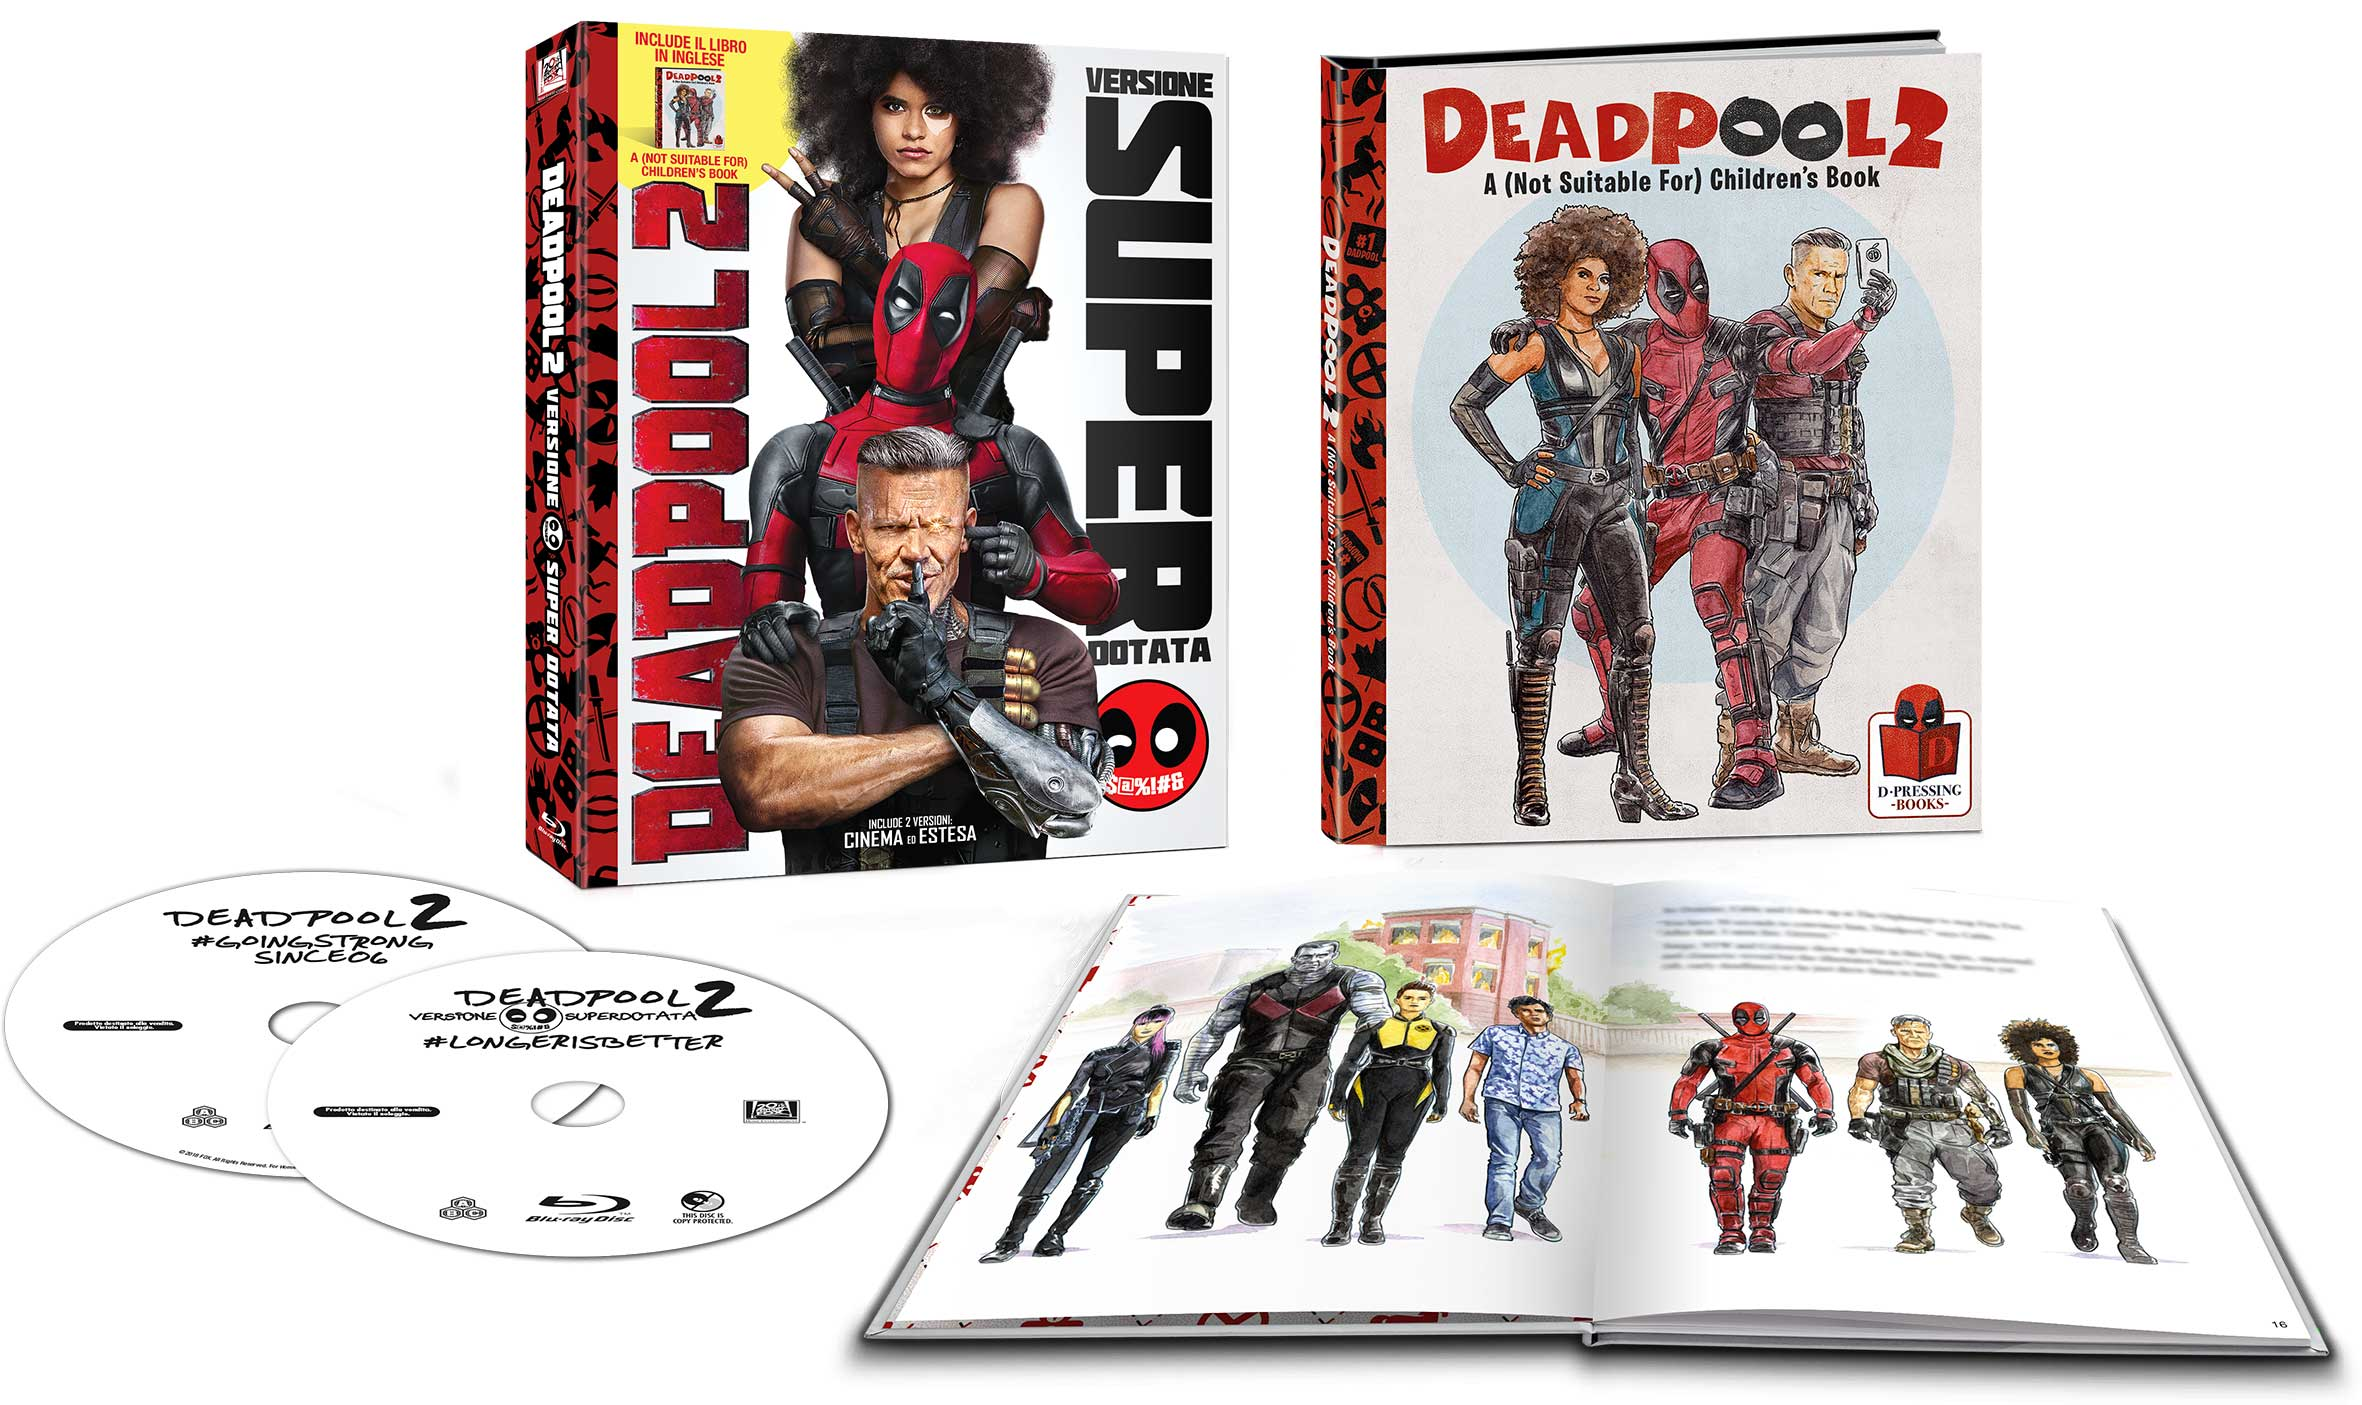 Deadpool 2 (2018) (Marvel) (edizione speciale booklet)